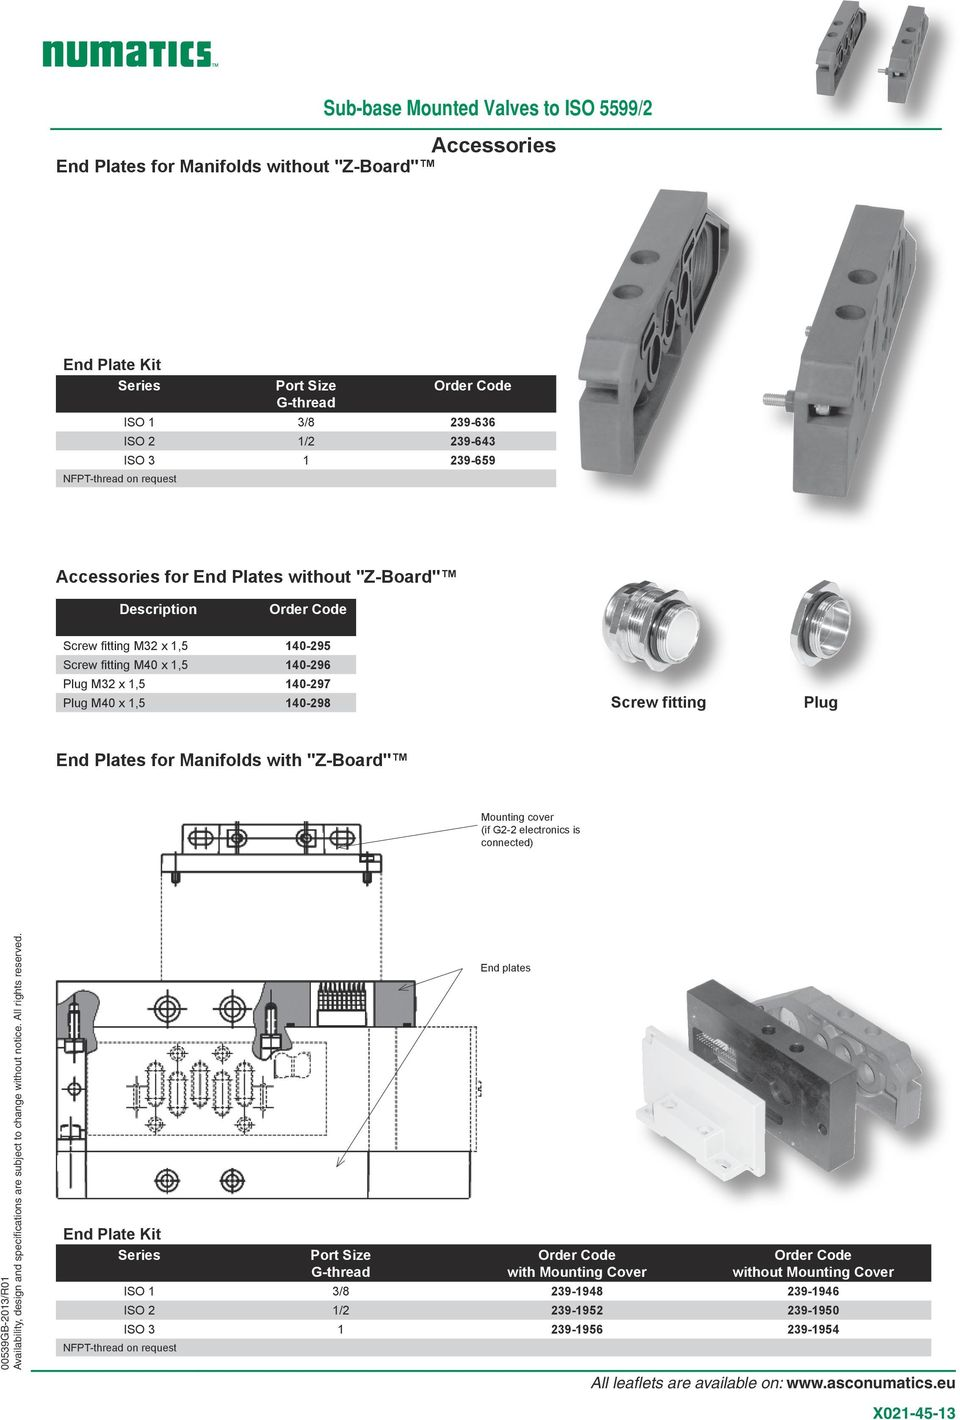 "0-298 Screw fitting Plug End Plates for Manifolds with ""Z-Board"" Mounting cover (if G2-2 electronics is connected) End Plate Kit Series NFPT-thread on request"